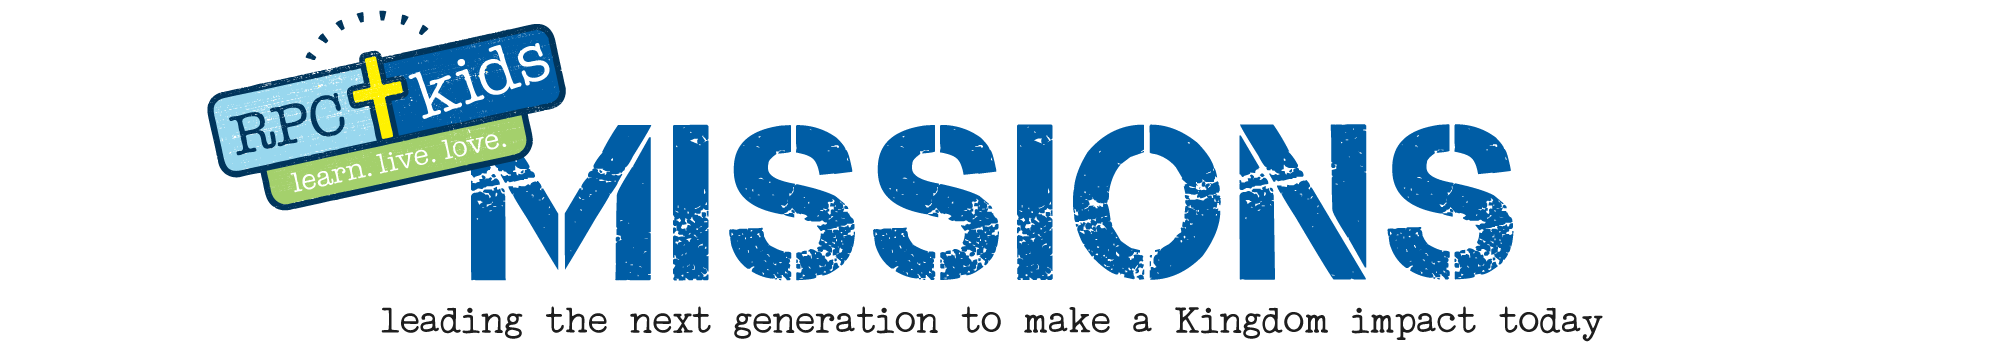 RPC-Kids-Banner-w-mission-statement